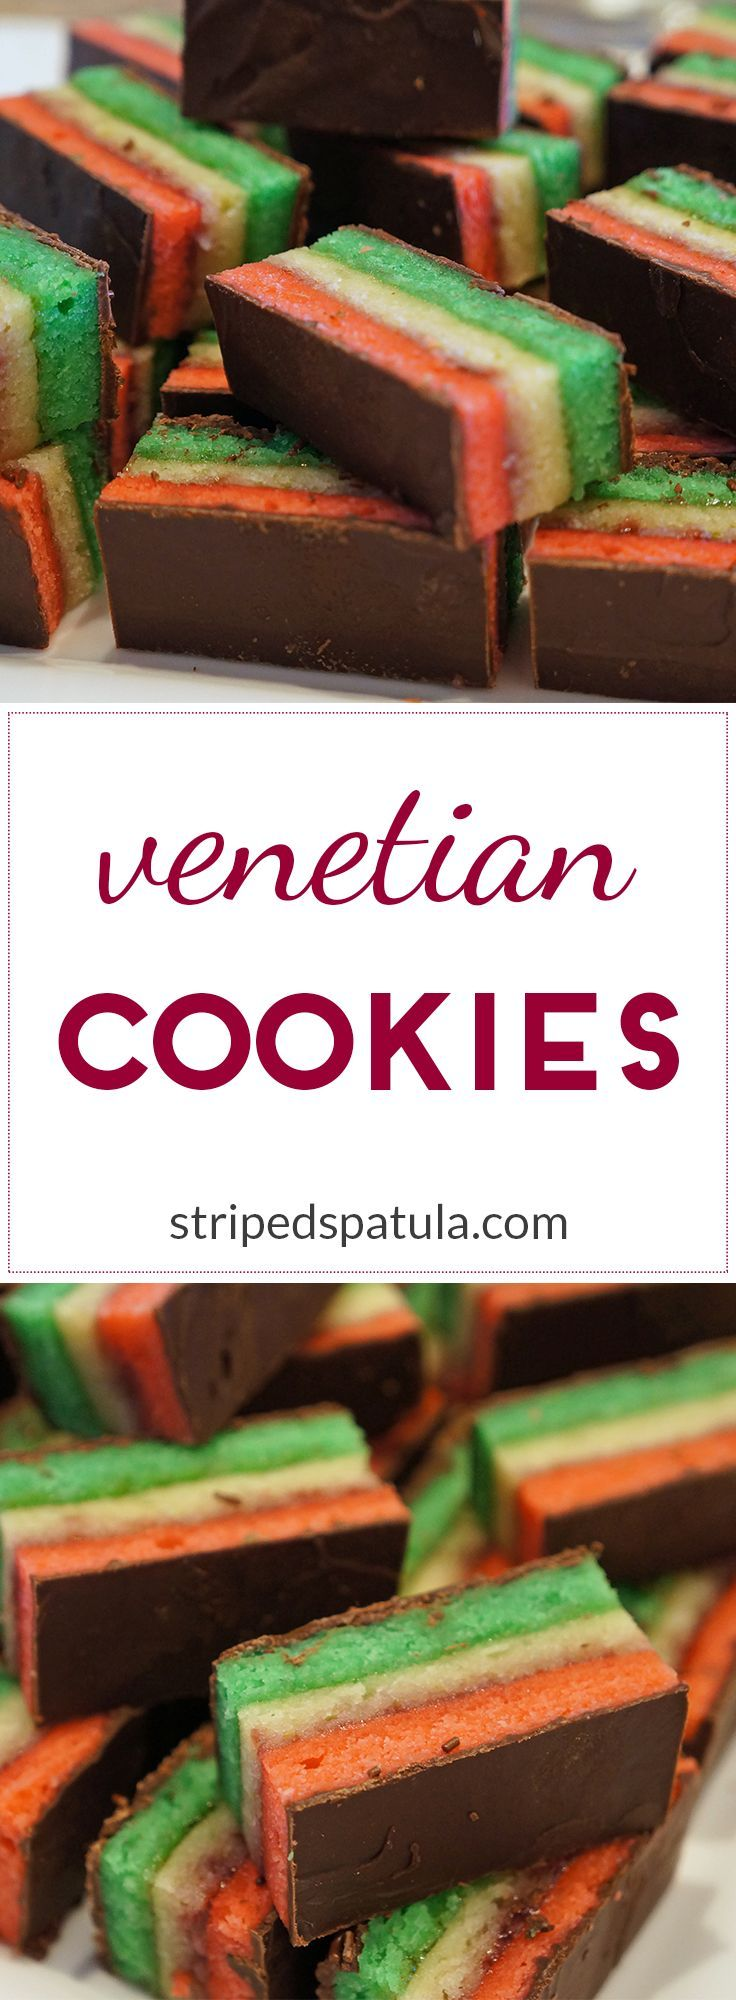 Venetian Cookies (also known as 7-Layer, Italian Rainbow, and Neapolitans) are layered petit fours with almond sponge cake, jam, and melted chocolate. Delicious!